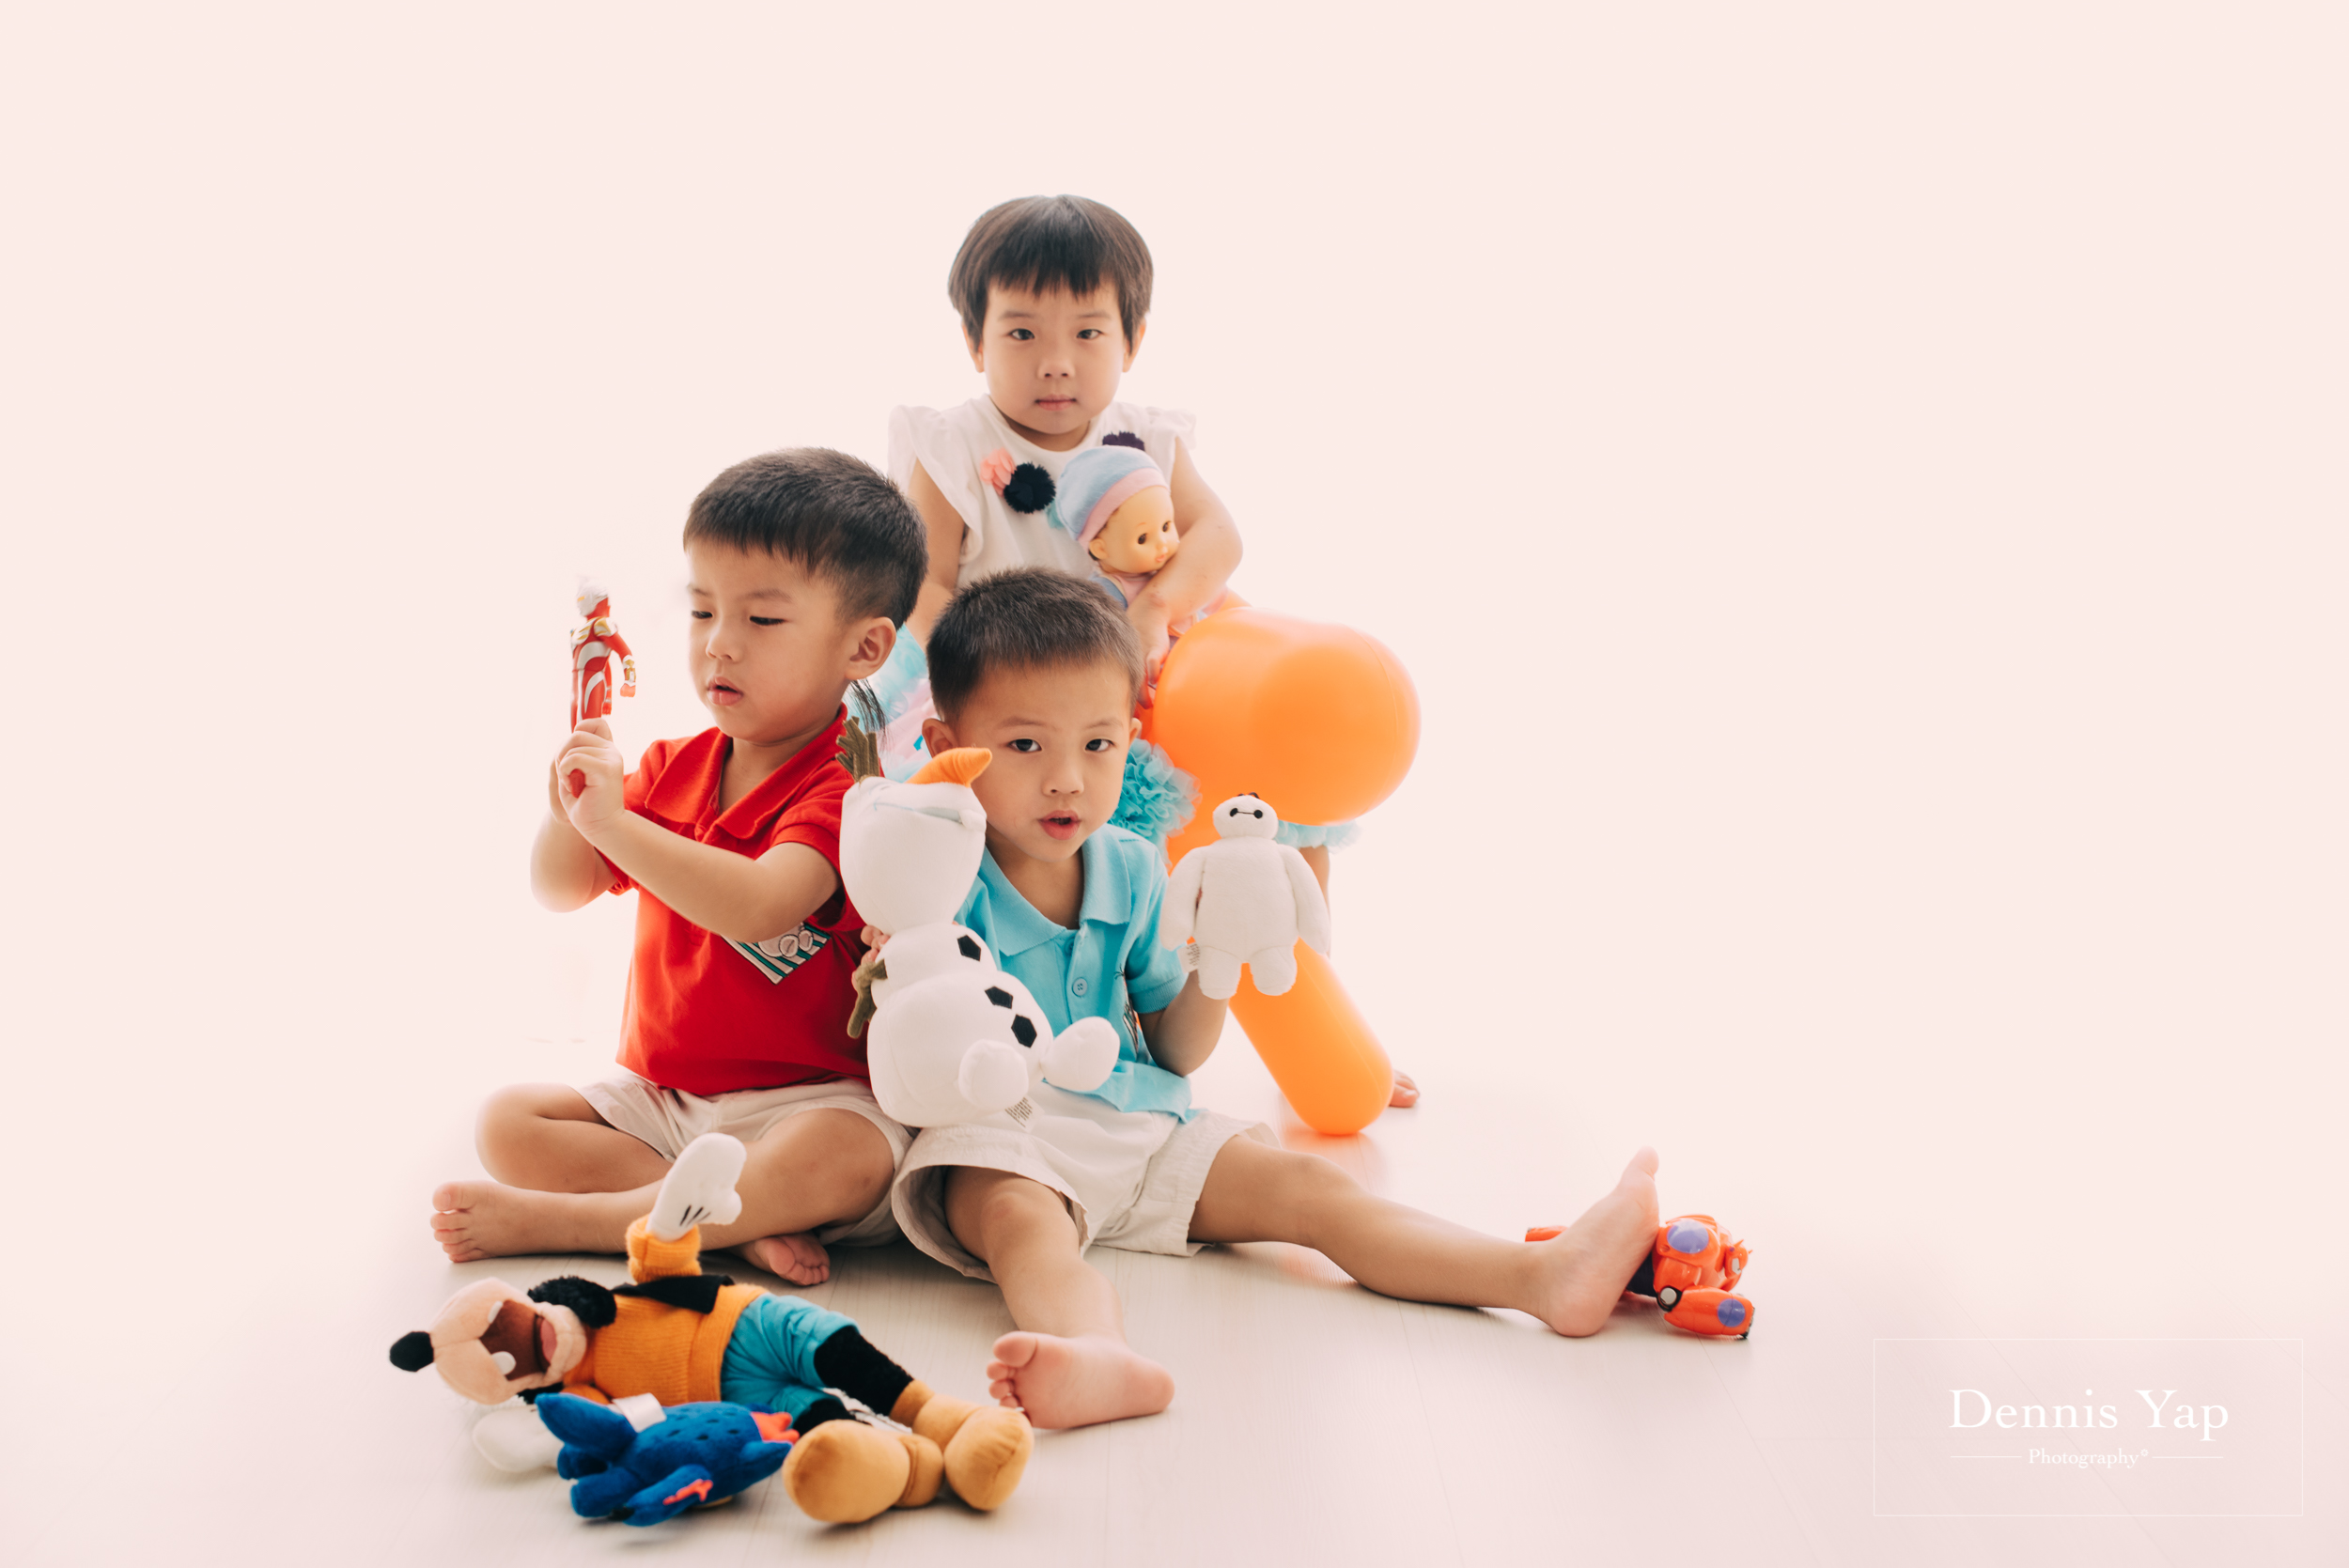 Choo family portrait dennis yap photography white background 2 jpg